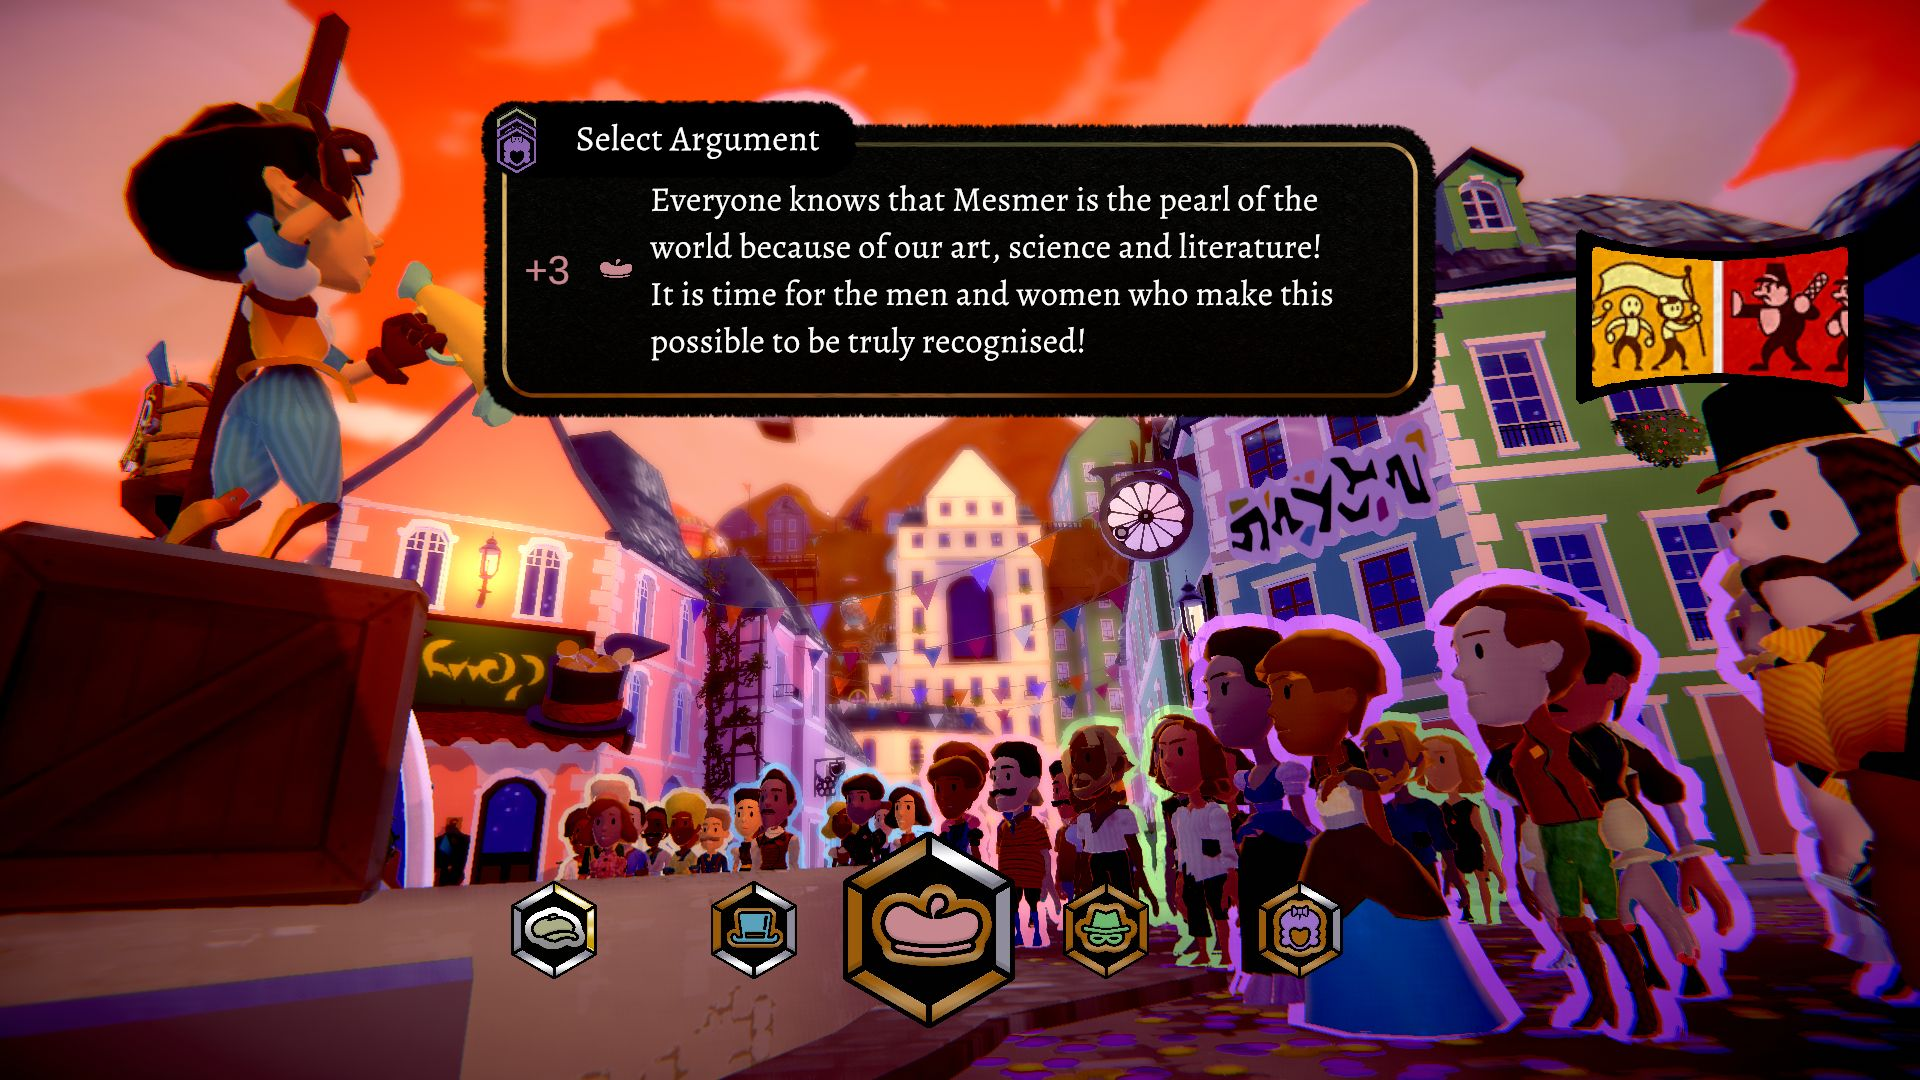 The player character in Mesmer stands on a box yelling at a crowd of locals through a loudspeaker.